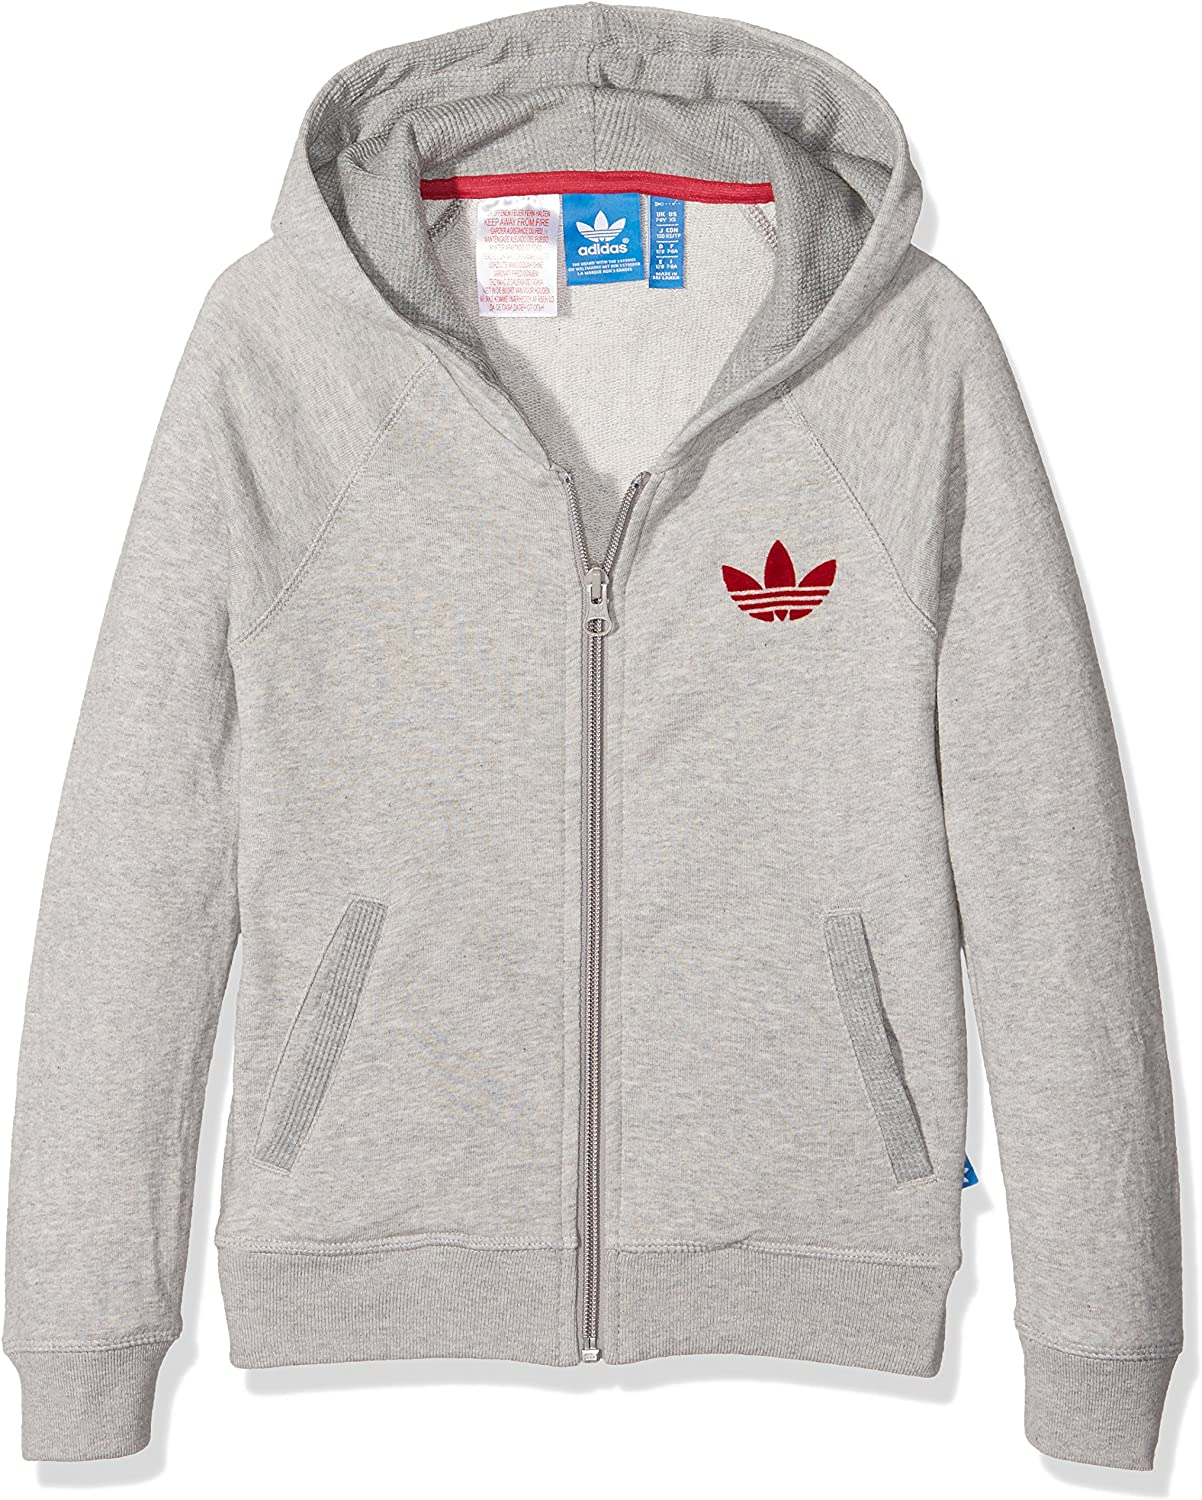 Adidas J FT Sweat shirt à Capuche Fille, Gris 110., Taille